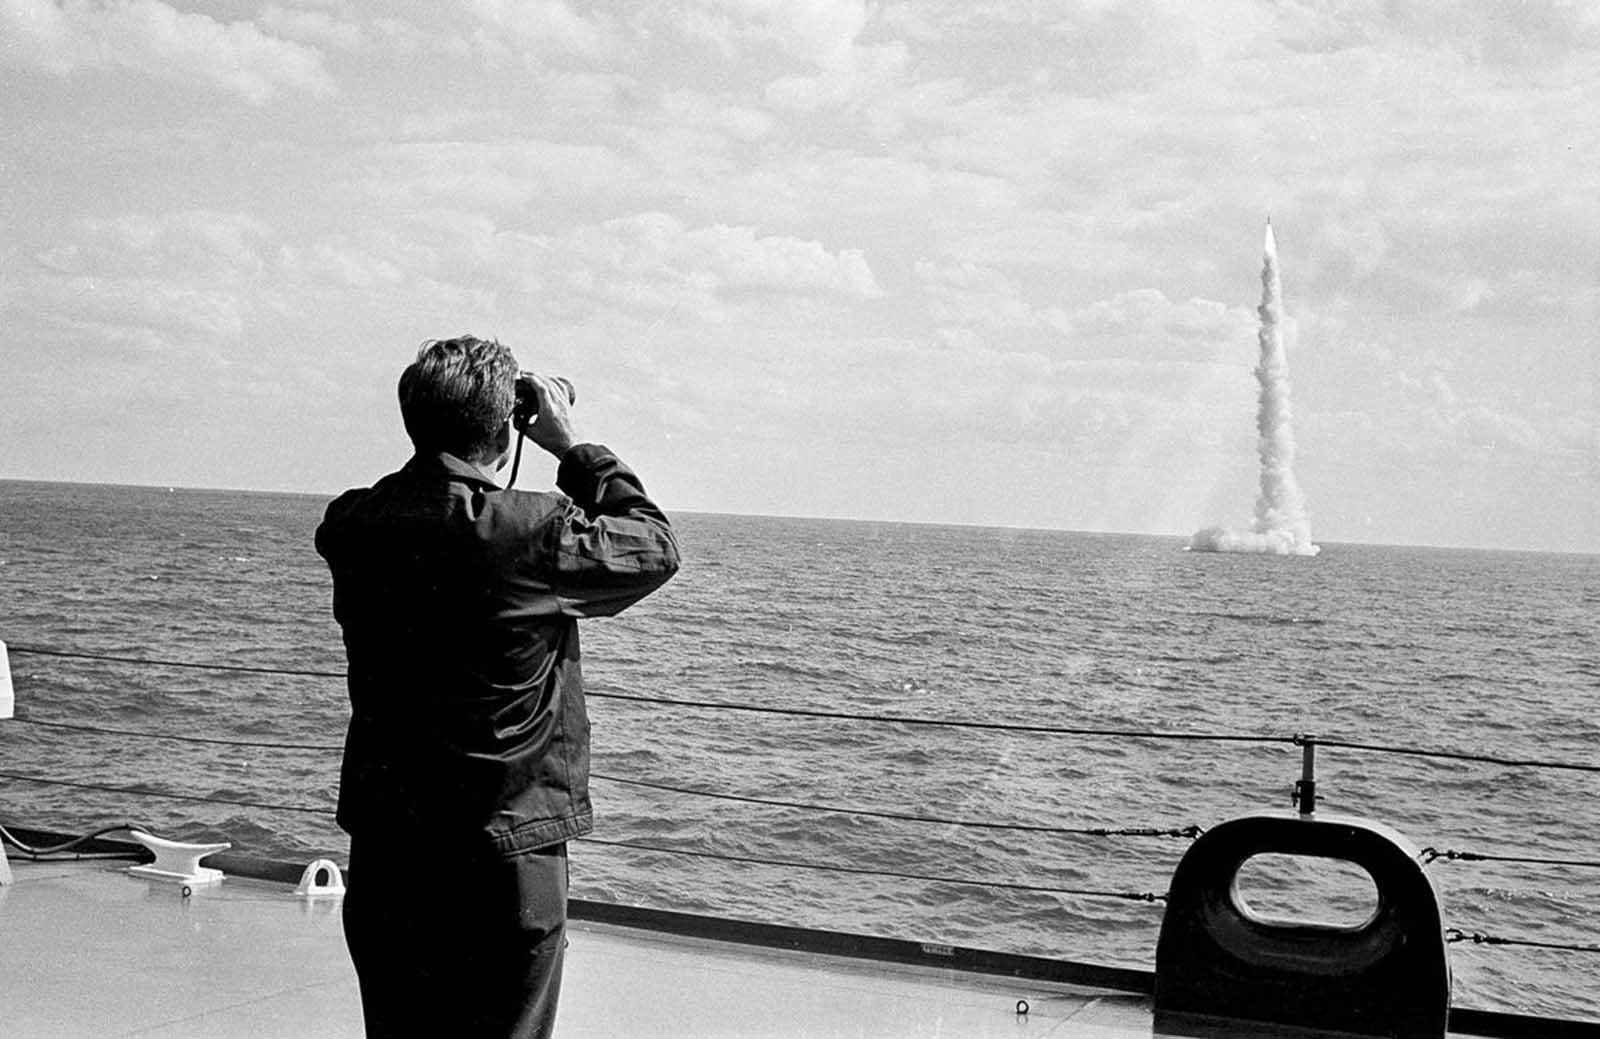 President John F. Kennedy, wearing a windbreaker, watches through binoculars as a Polaris missile clears the surface after firing from a submerged nuclear sub off Cape Canaveral, Florida, on November 16, 1963.